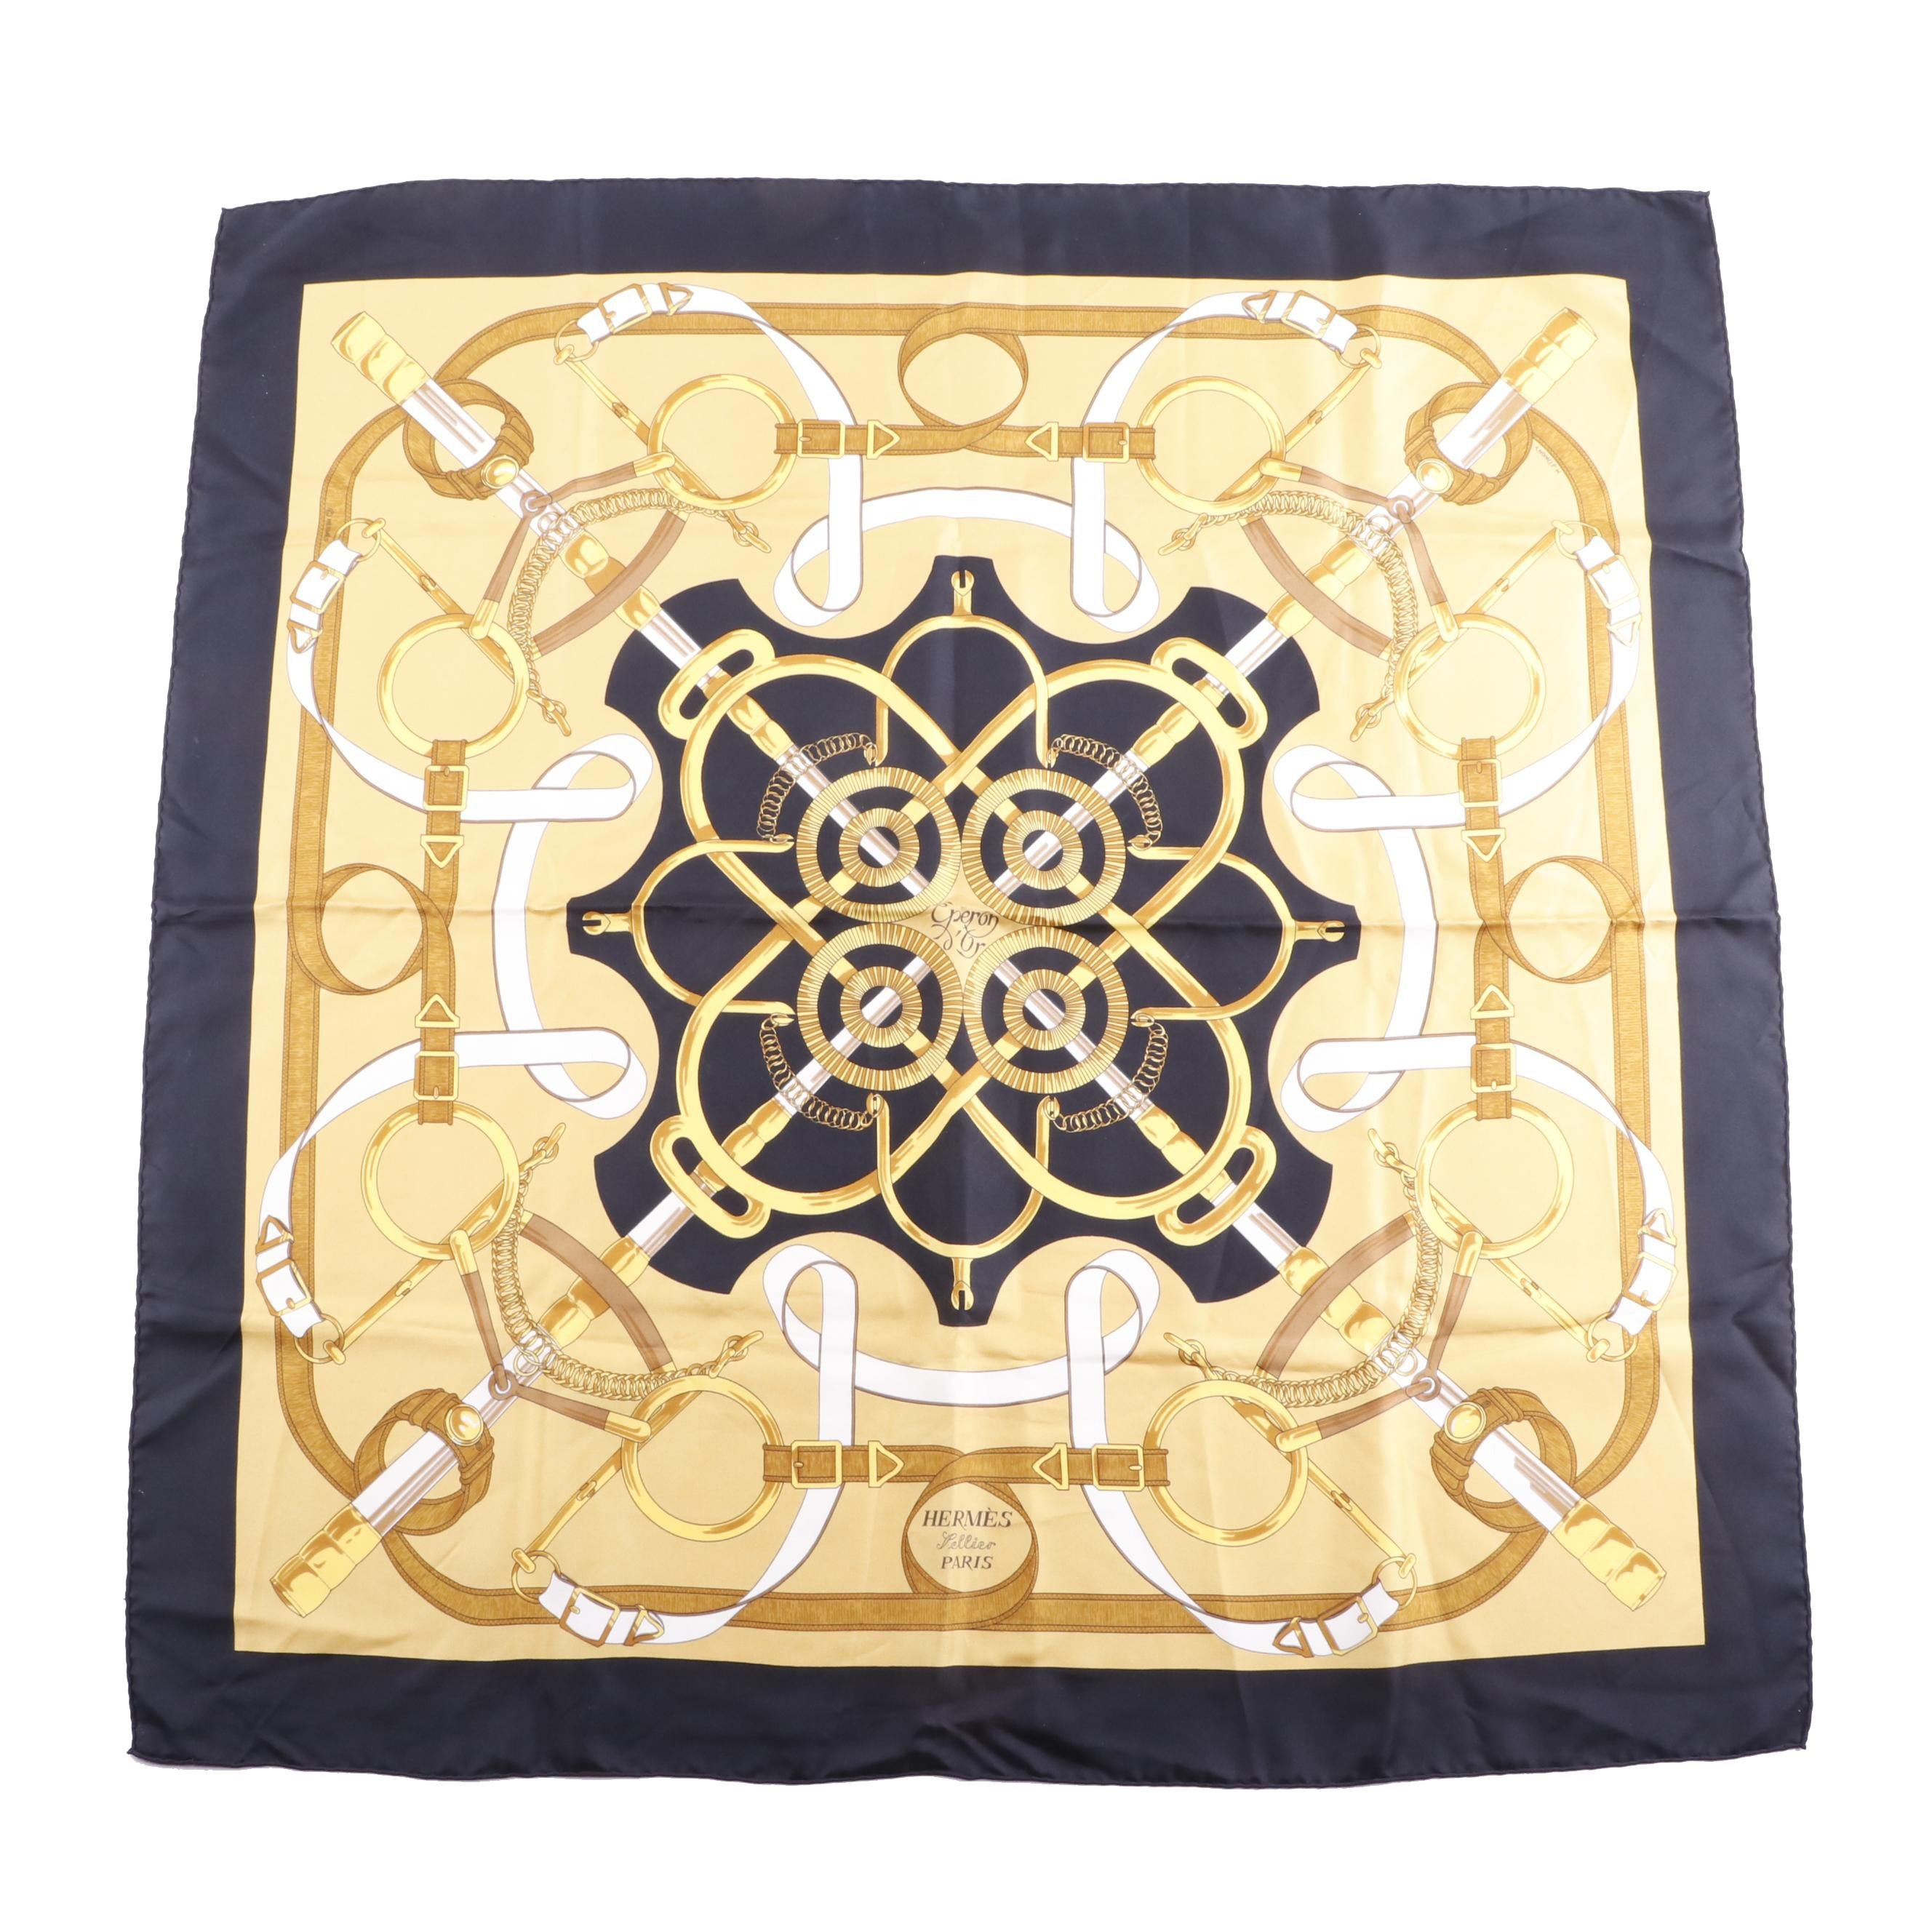 "Vintage Hermès of Paris ""Eperon d'Or"" Silk Scarf"